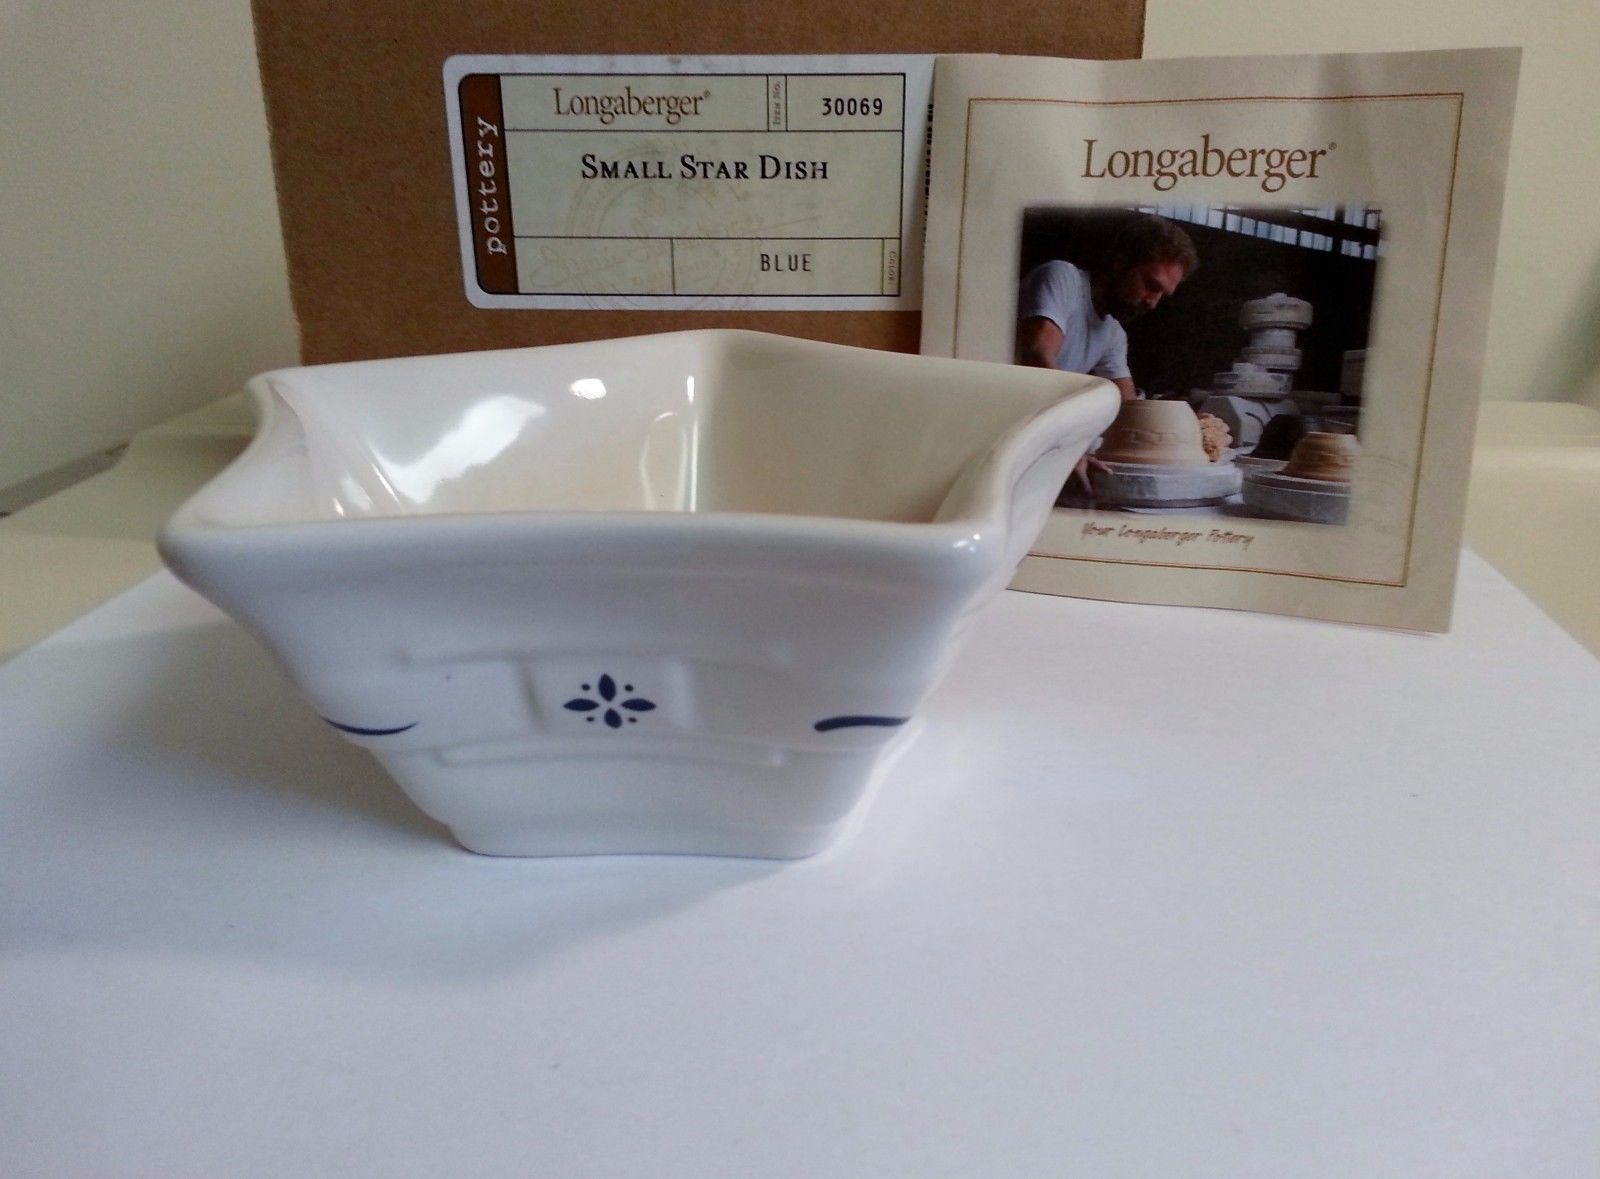 Longaberger Mini Star Dish Small Classic Blue Pottery New In Box USA Made